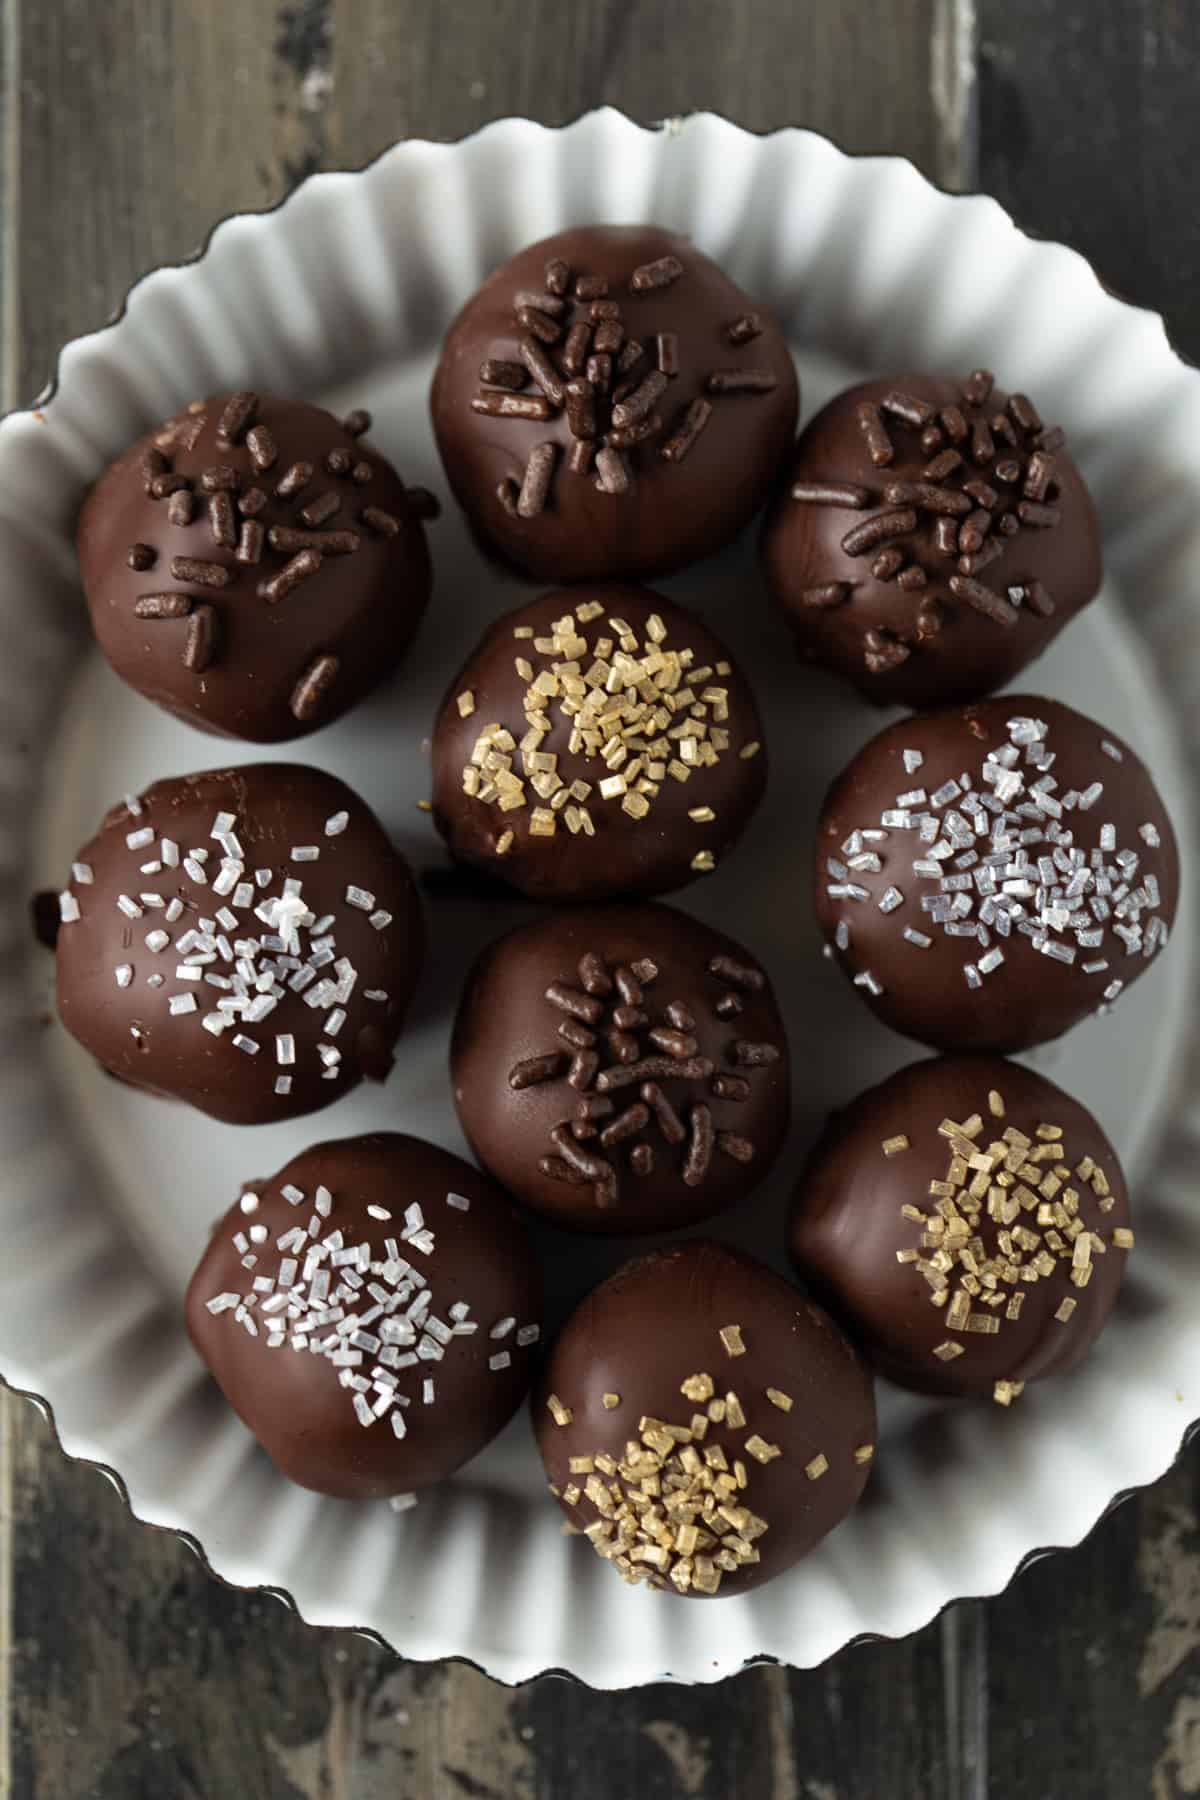 Chocolate dipped truffles in a small white metal fluted tart pan.